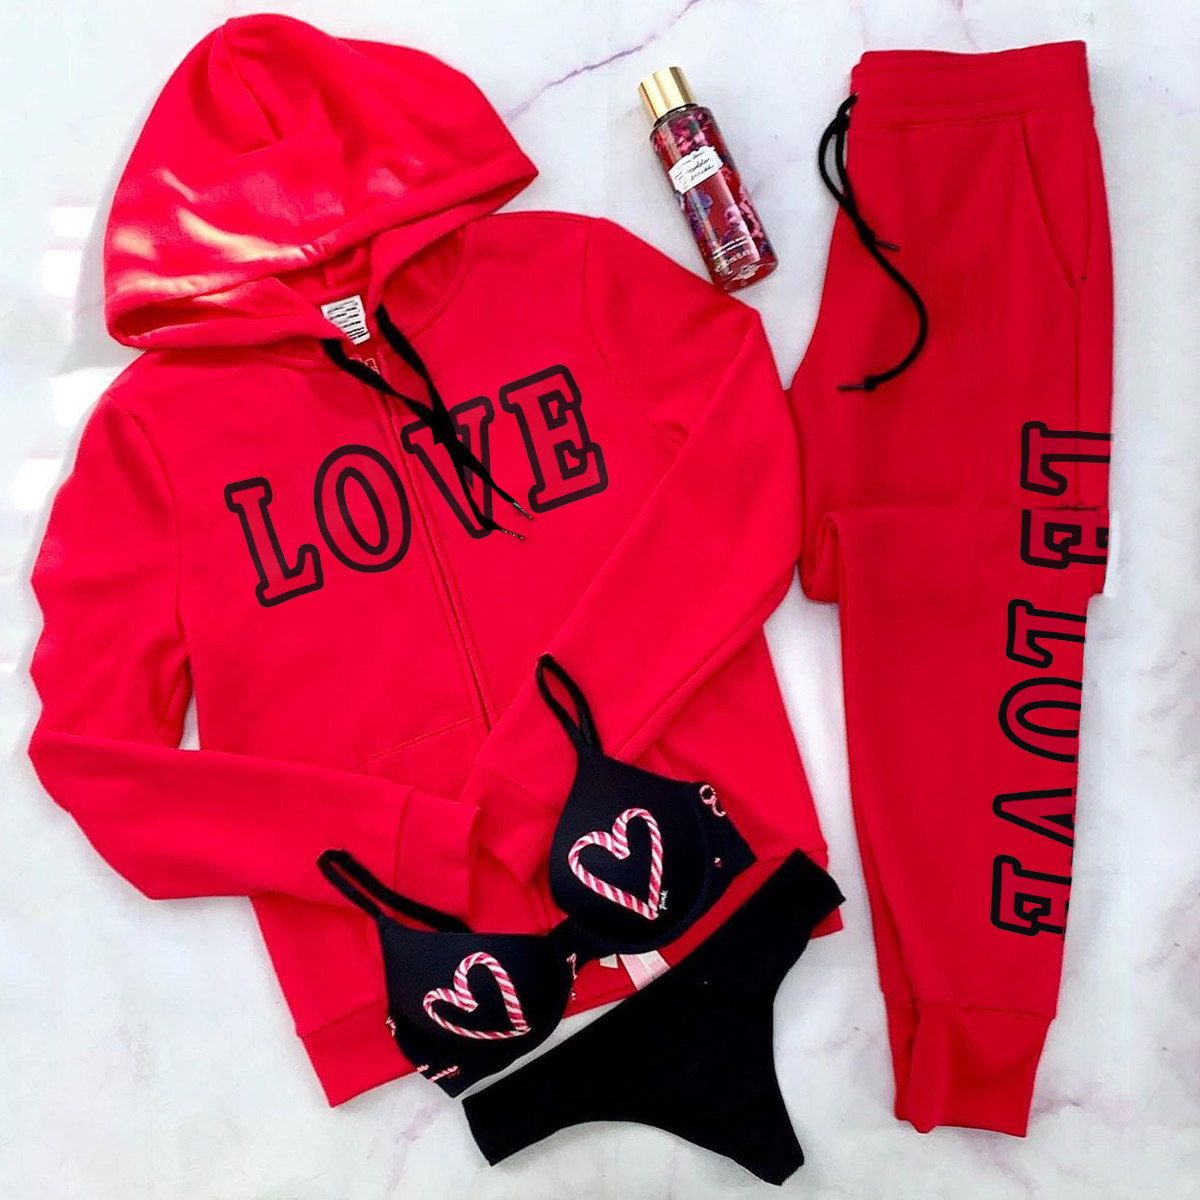 Sports hooded loose female yoga set(Underwear is not included)